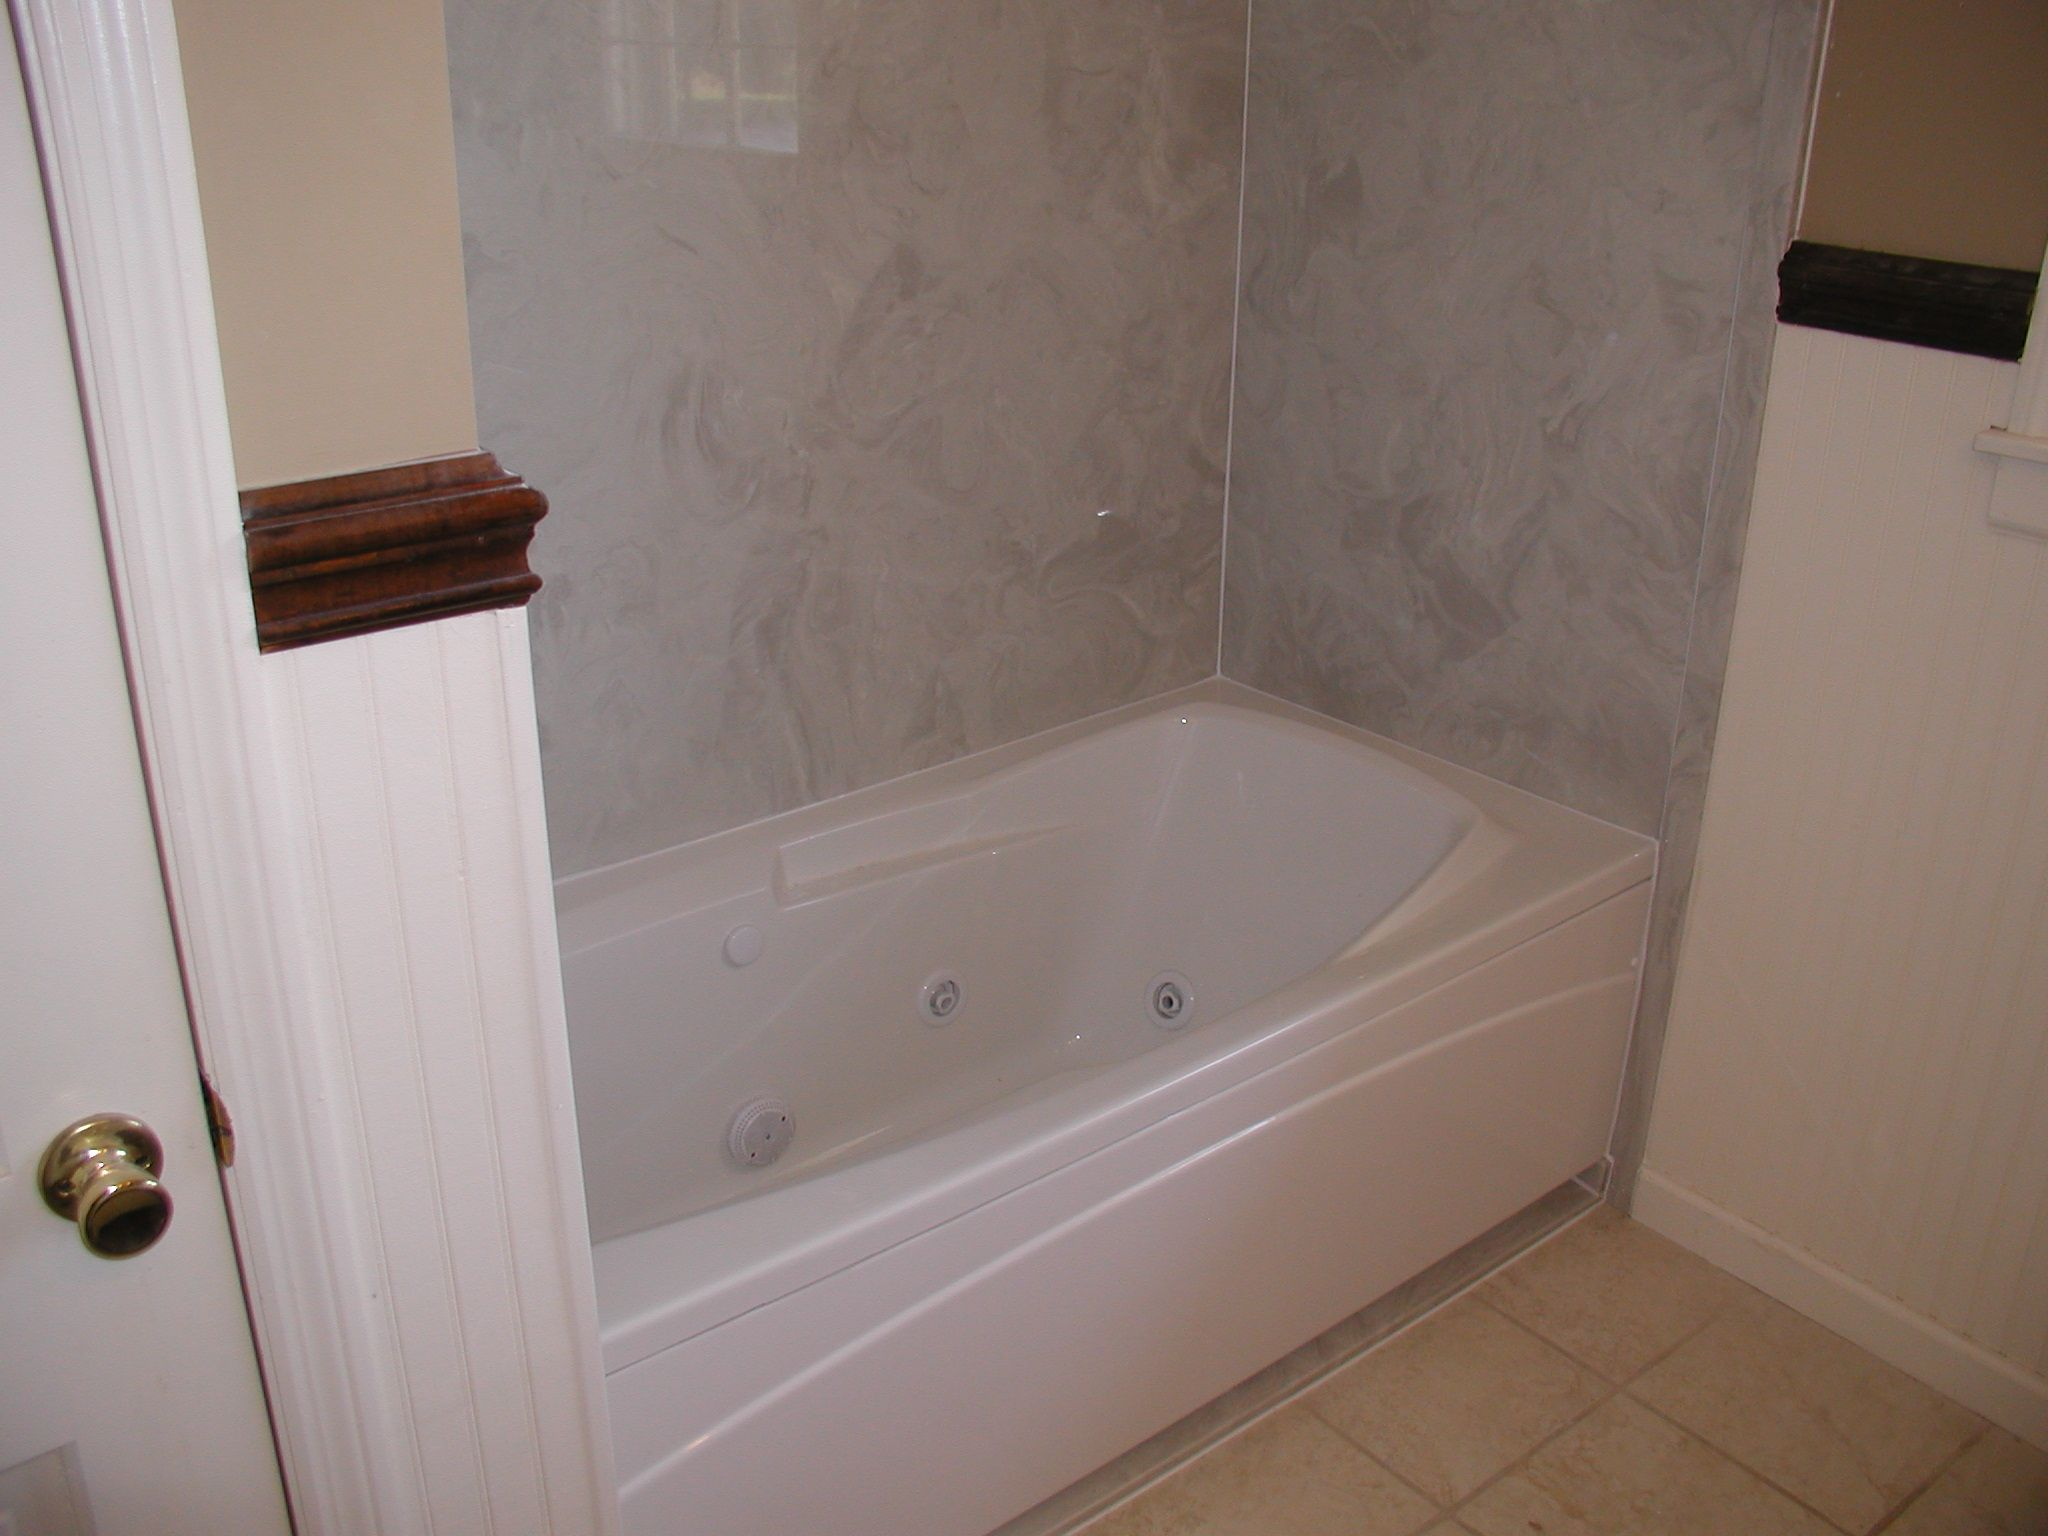 pin new by bathtub shower marble tub on anders pinterest surround walls lake pan seth cultured